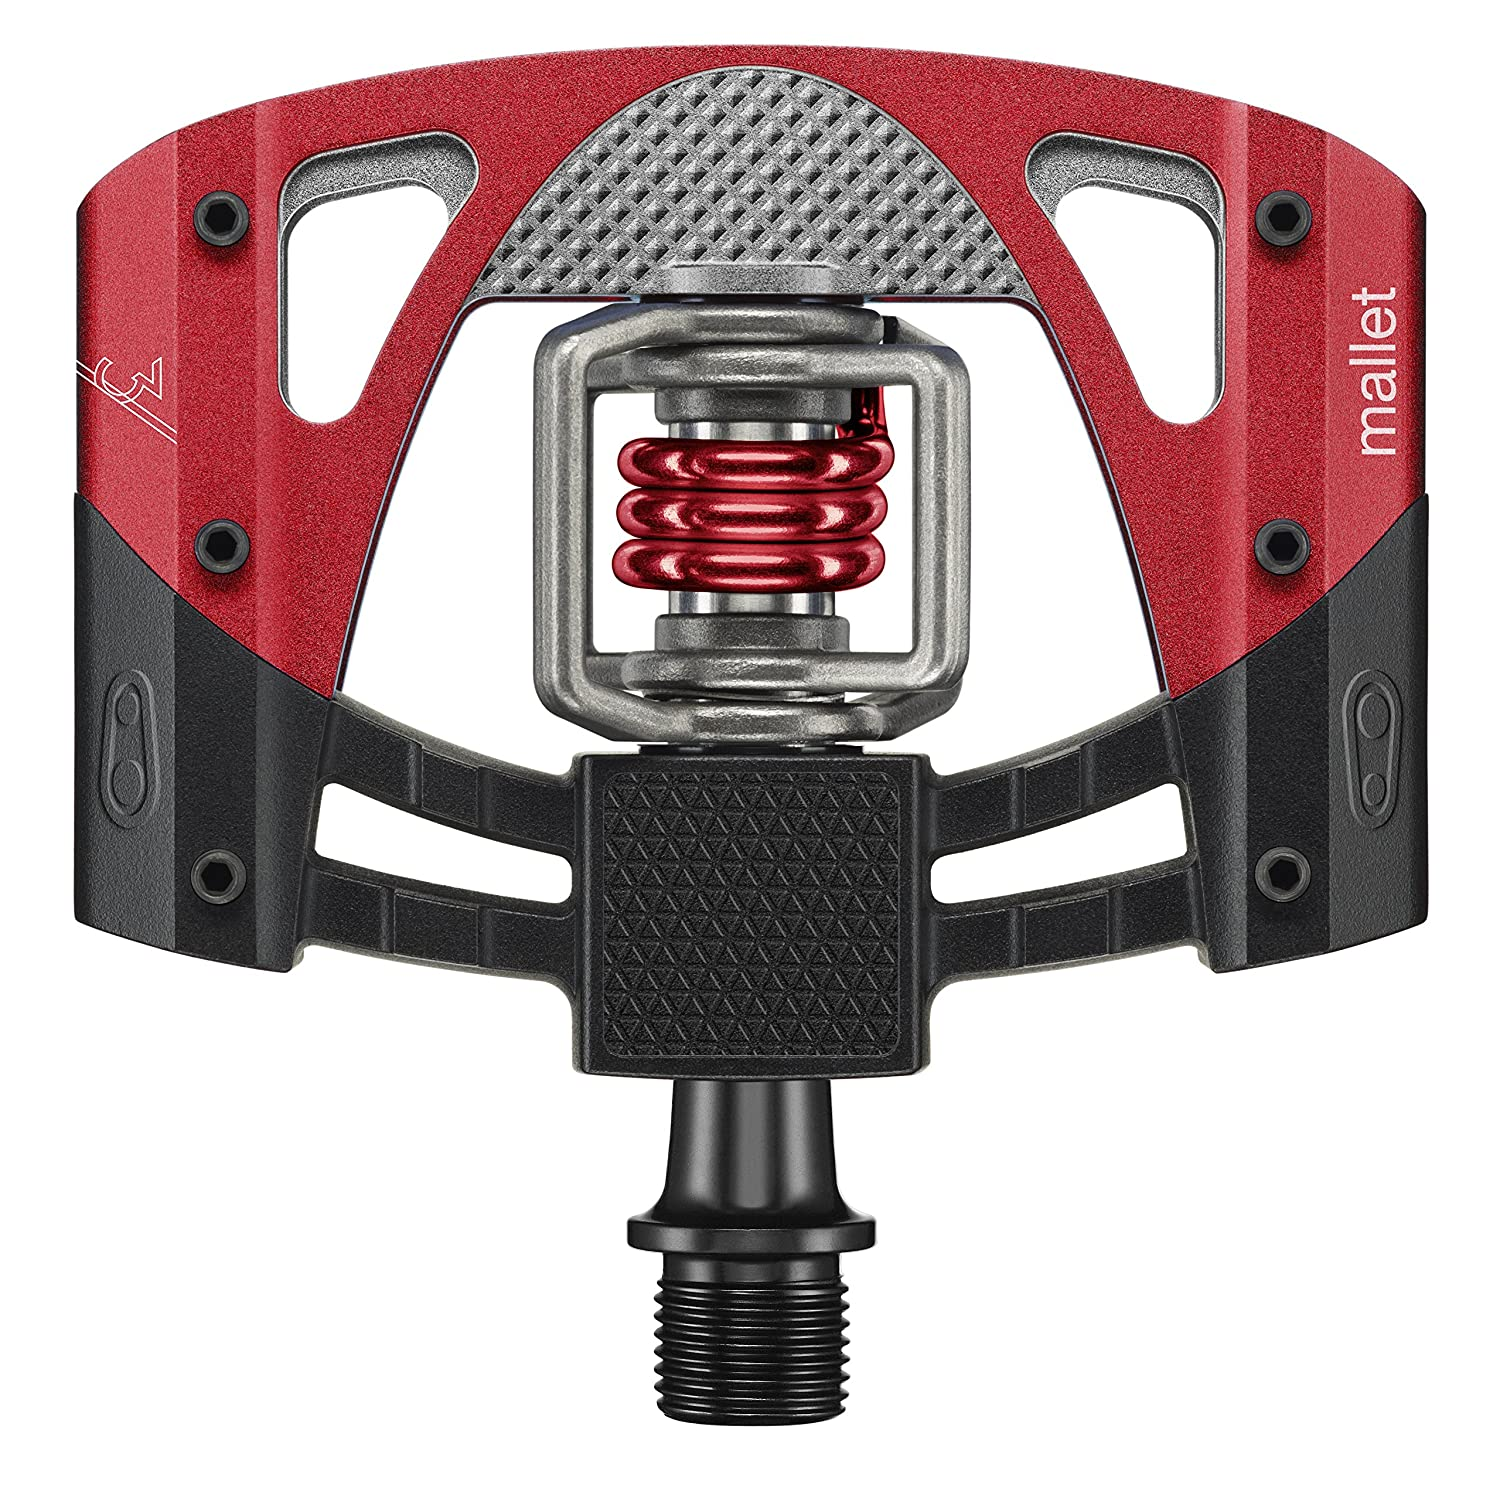 Crank Brothers Mallet 3 Bike Pedal Black Red Dh